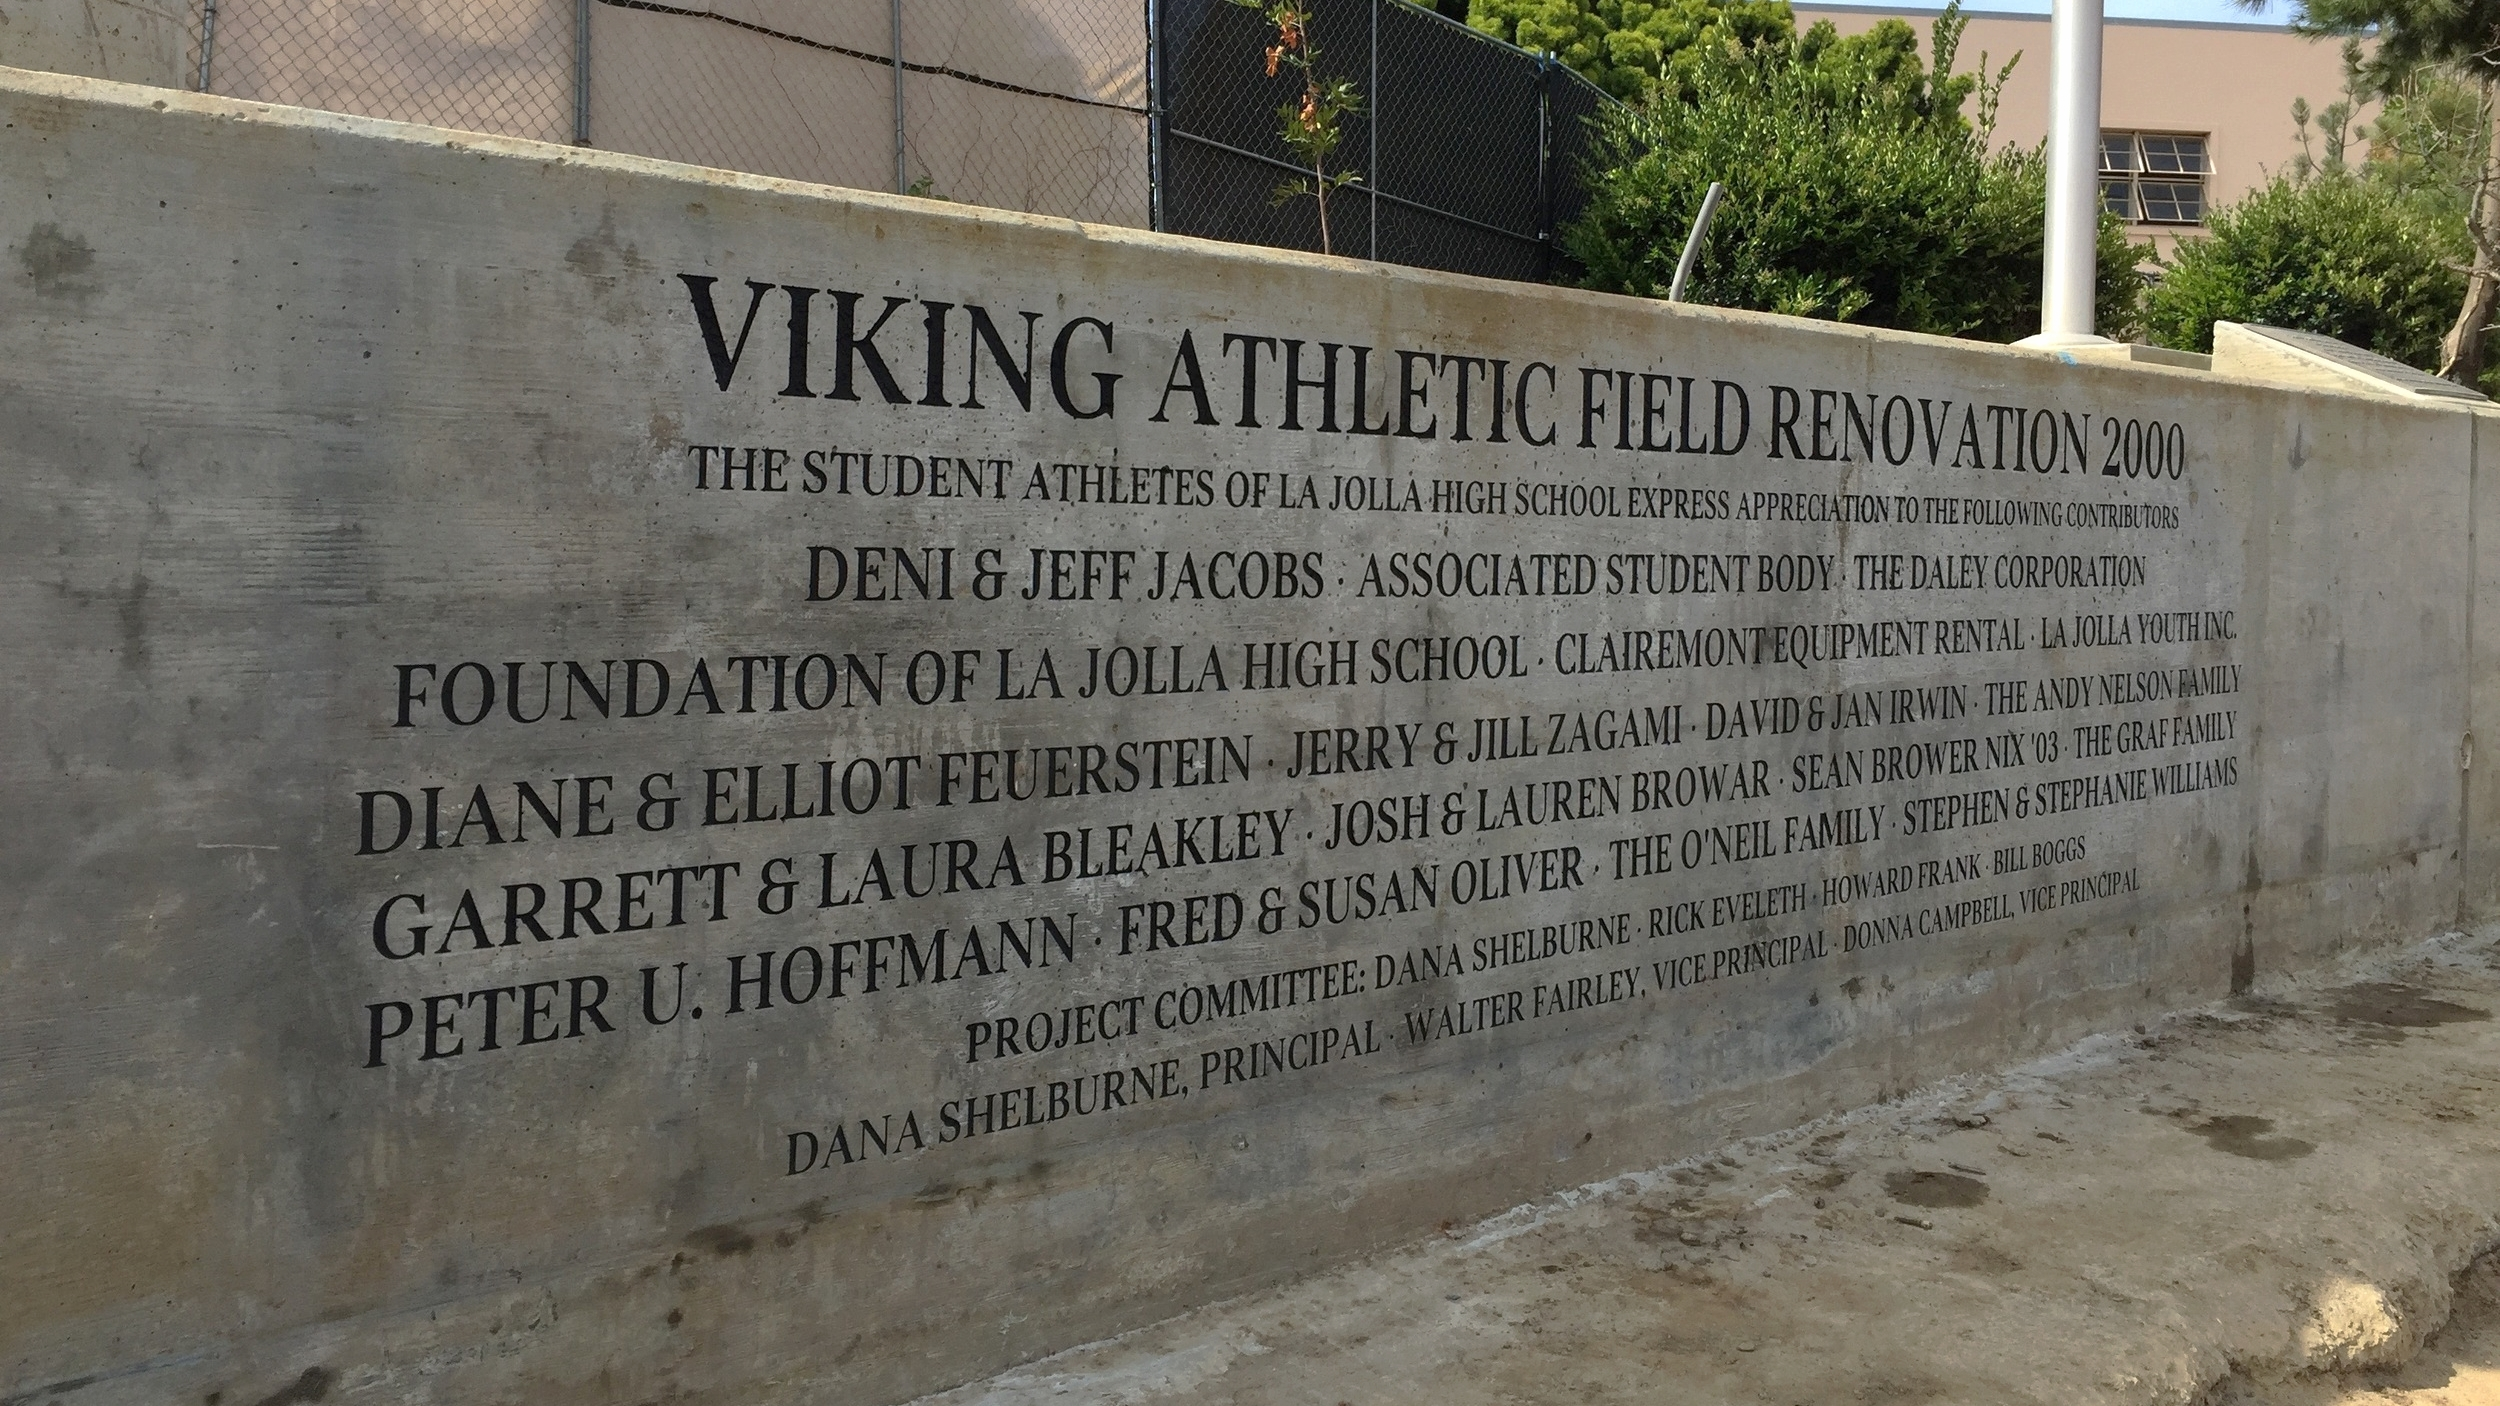 Viking Athletic Field Renovation